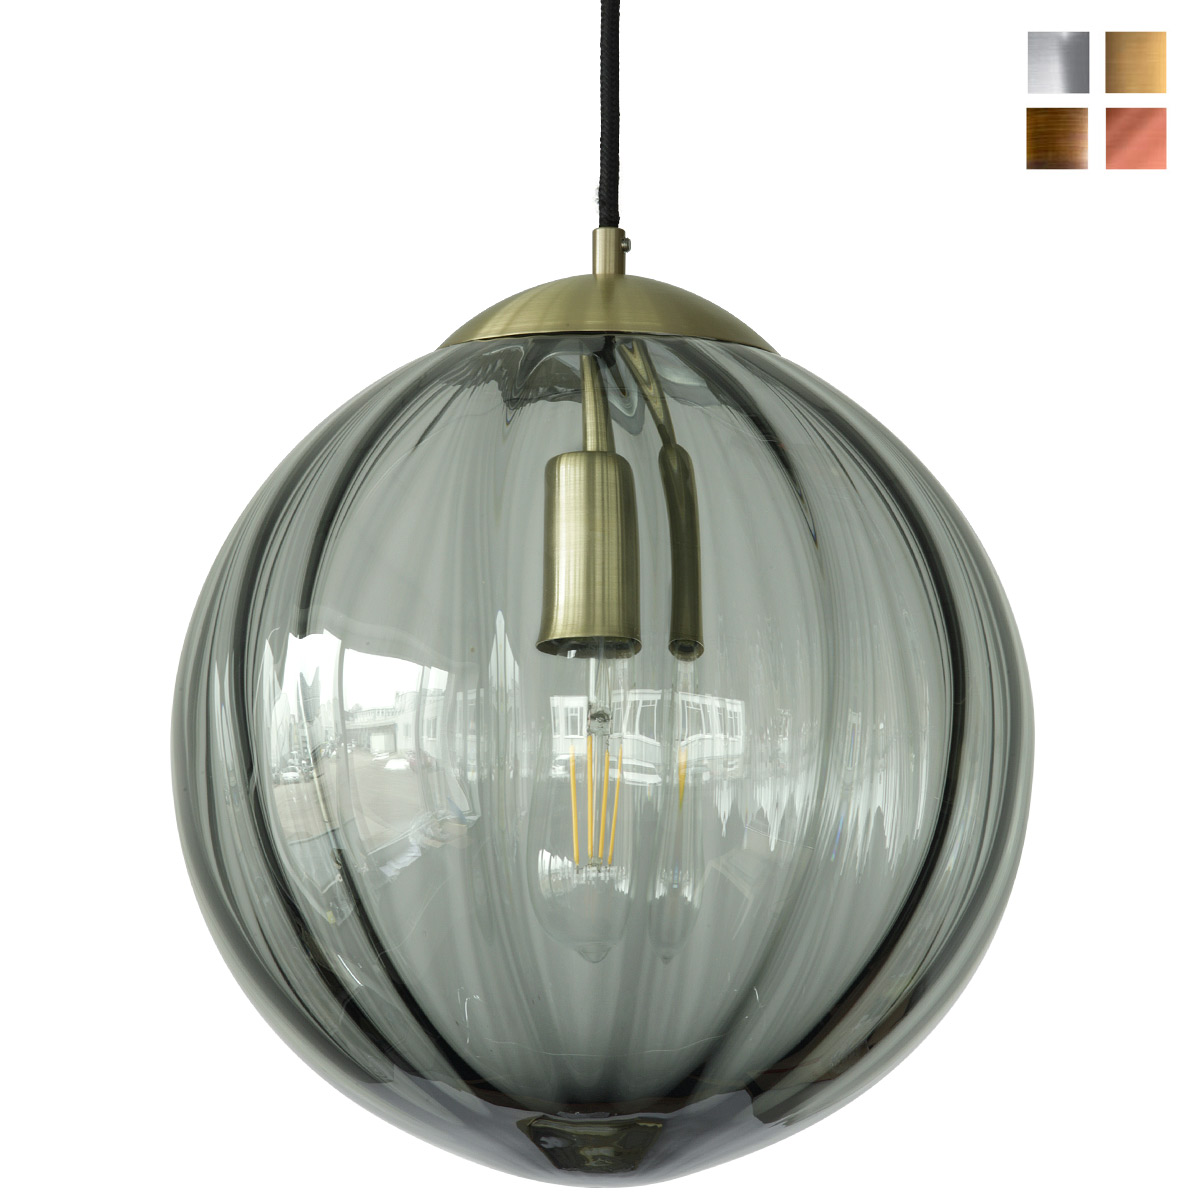 43b350d3e453 Image 1: Glass ball pendant lamp with grey smoked glass shade (Ø 30 cm),  shown here in brass